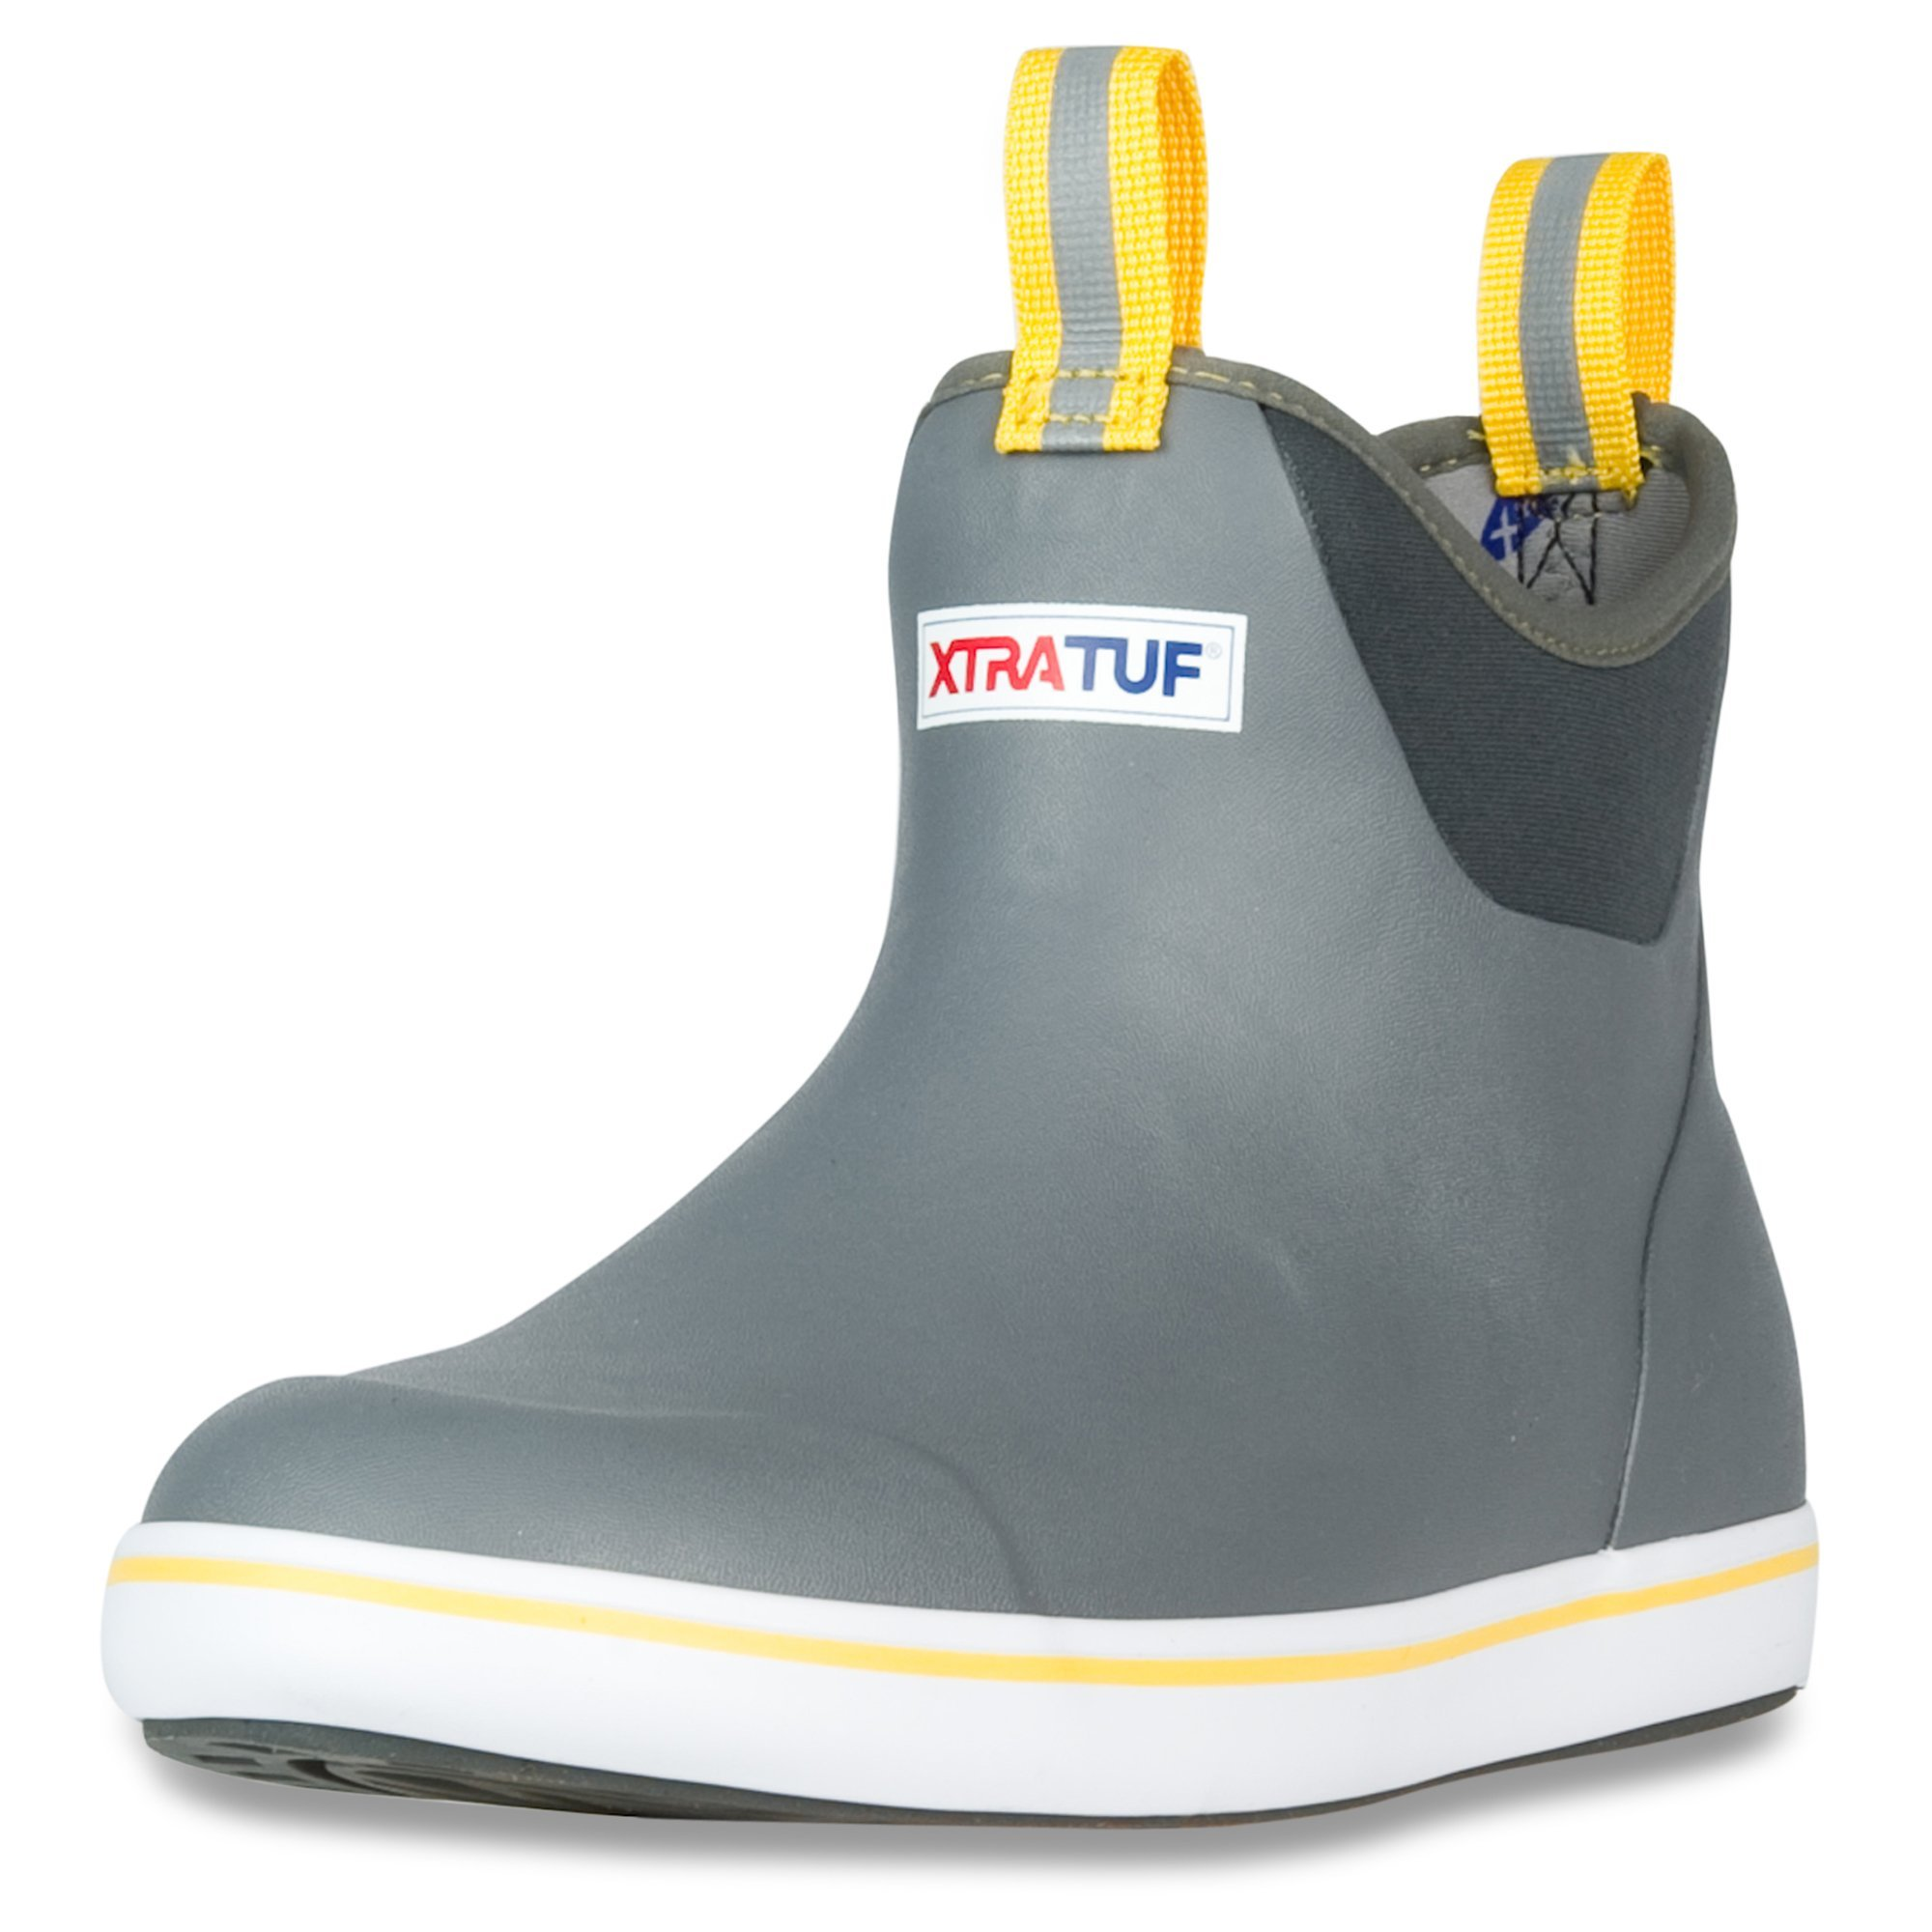 XTRATUF Performance Series 6'' Men's Full Rubber Ankle Deck Boots, Gray & Yellow (22735) (Renewed)